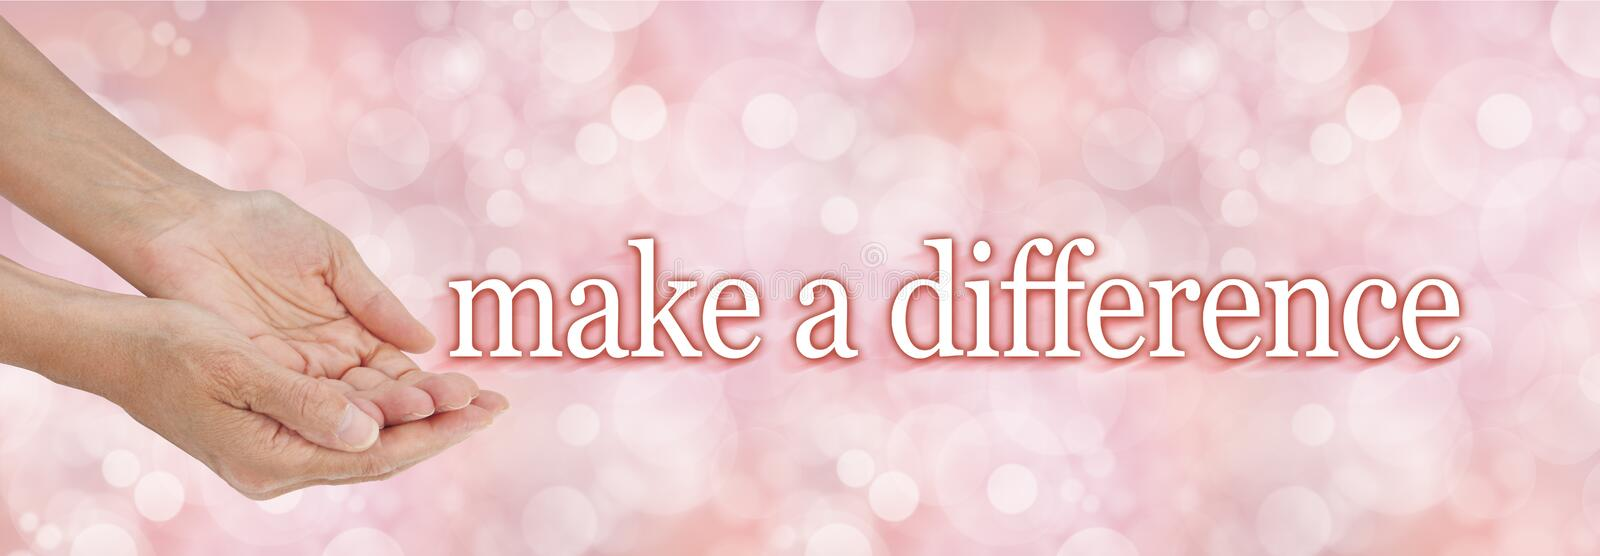 Make a difference charity campaign background stock photo